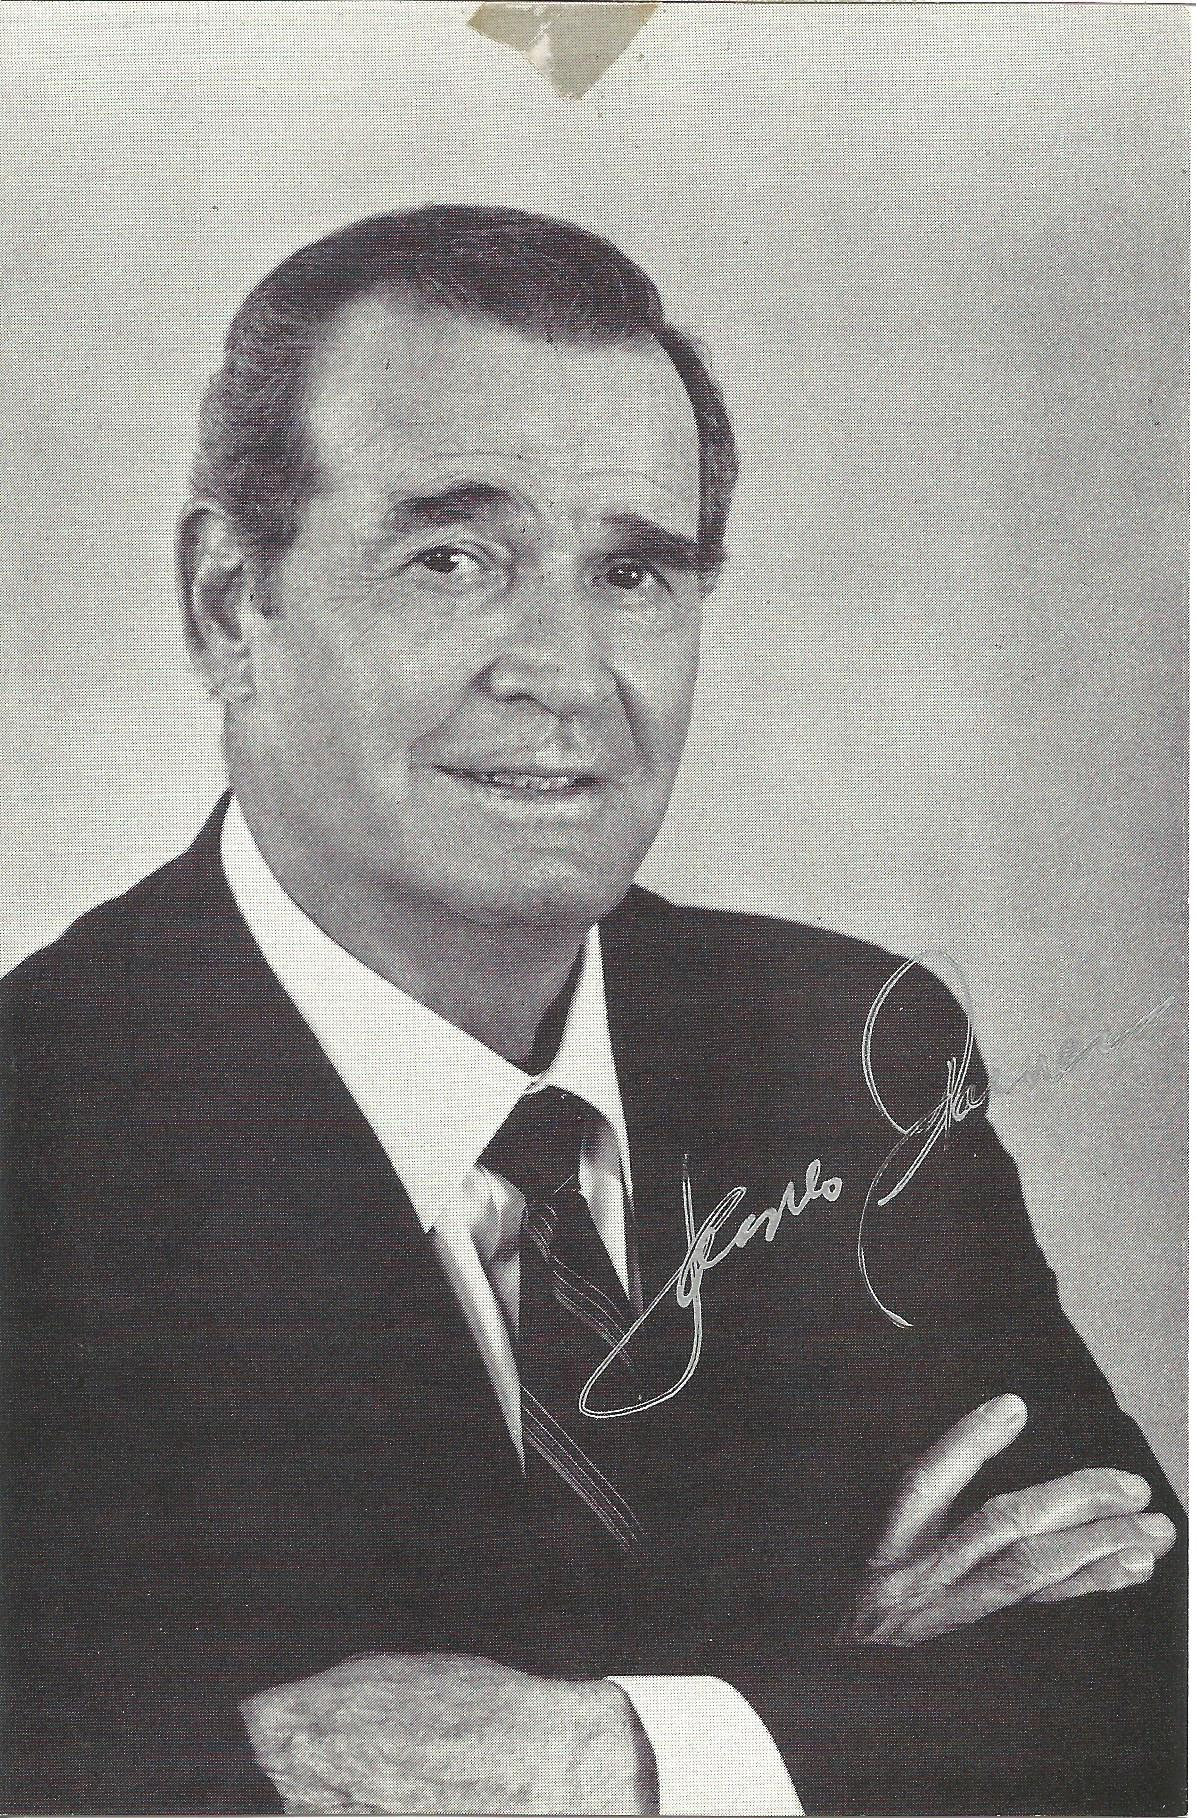 Actor James Garner signed 6x4 black and white photo. James Garner was an American actor and